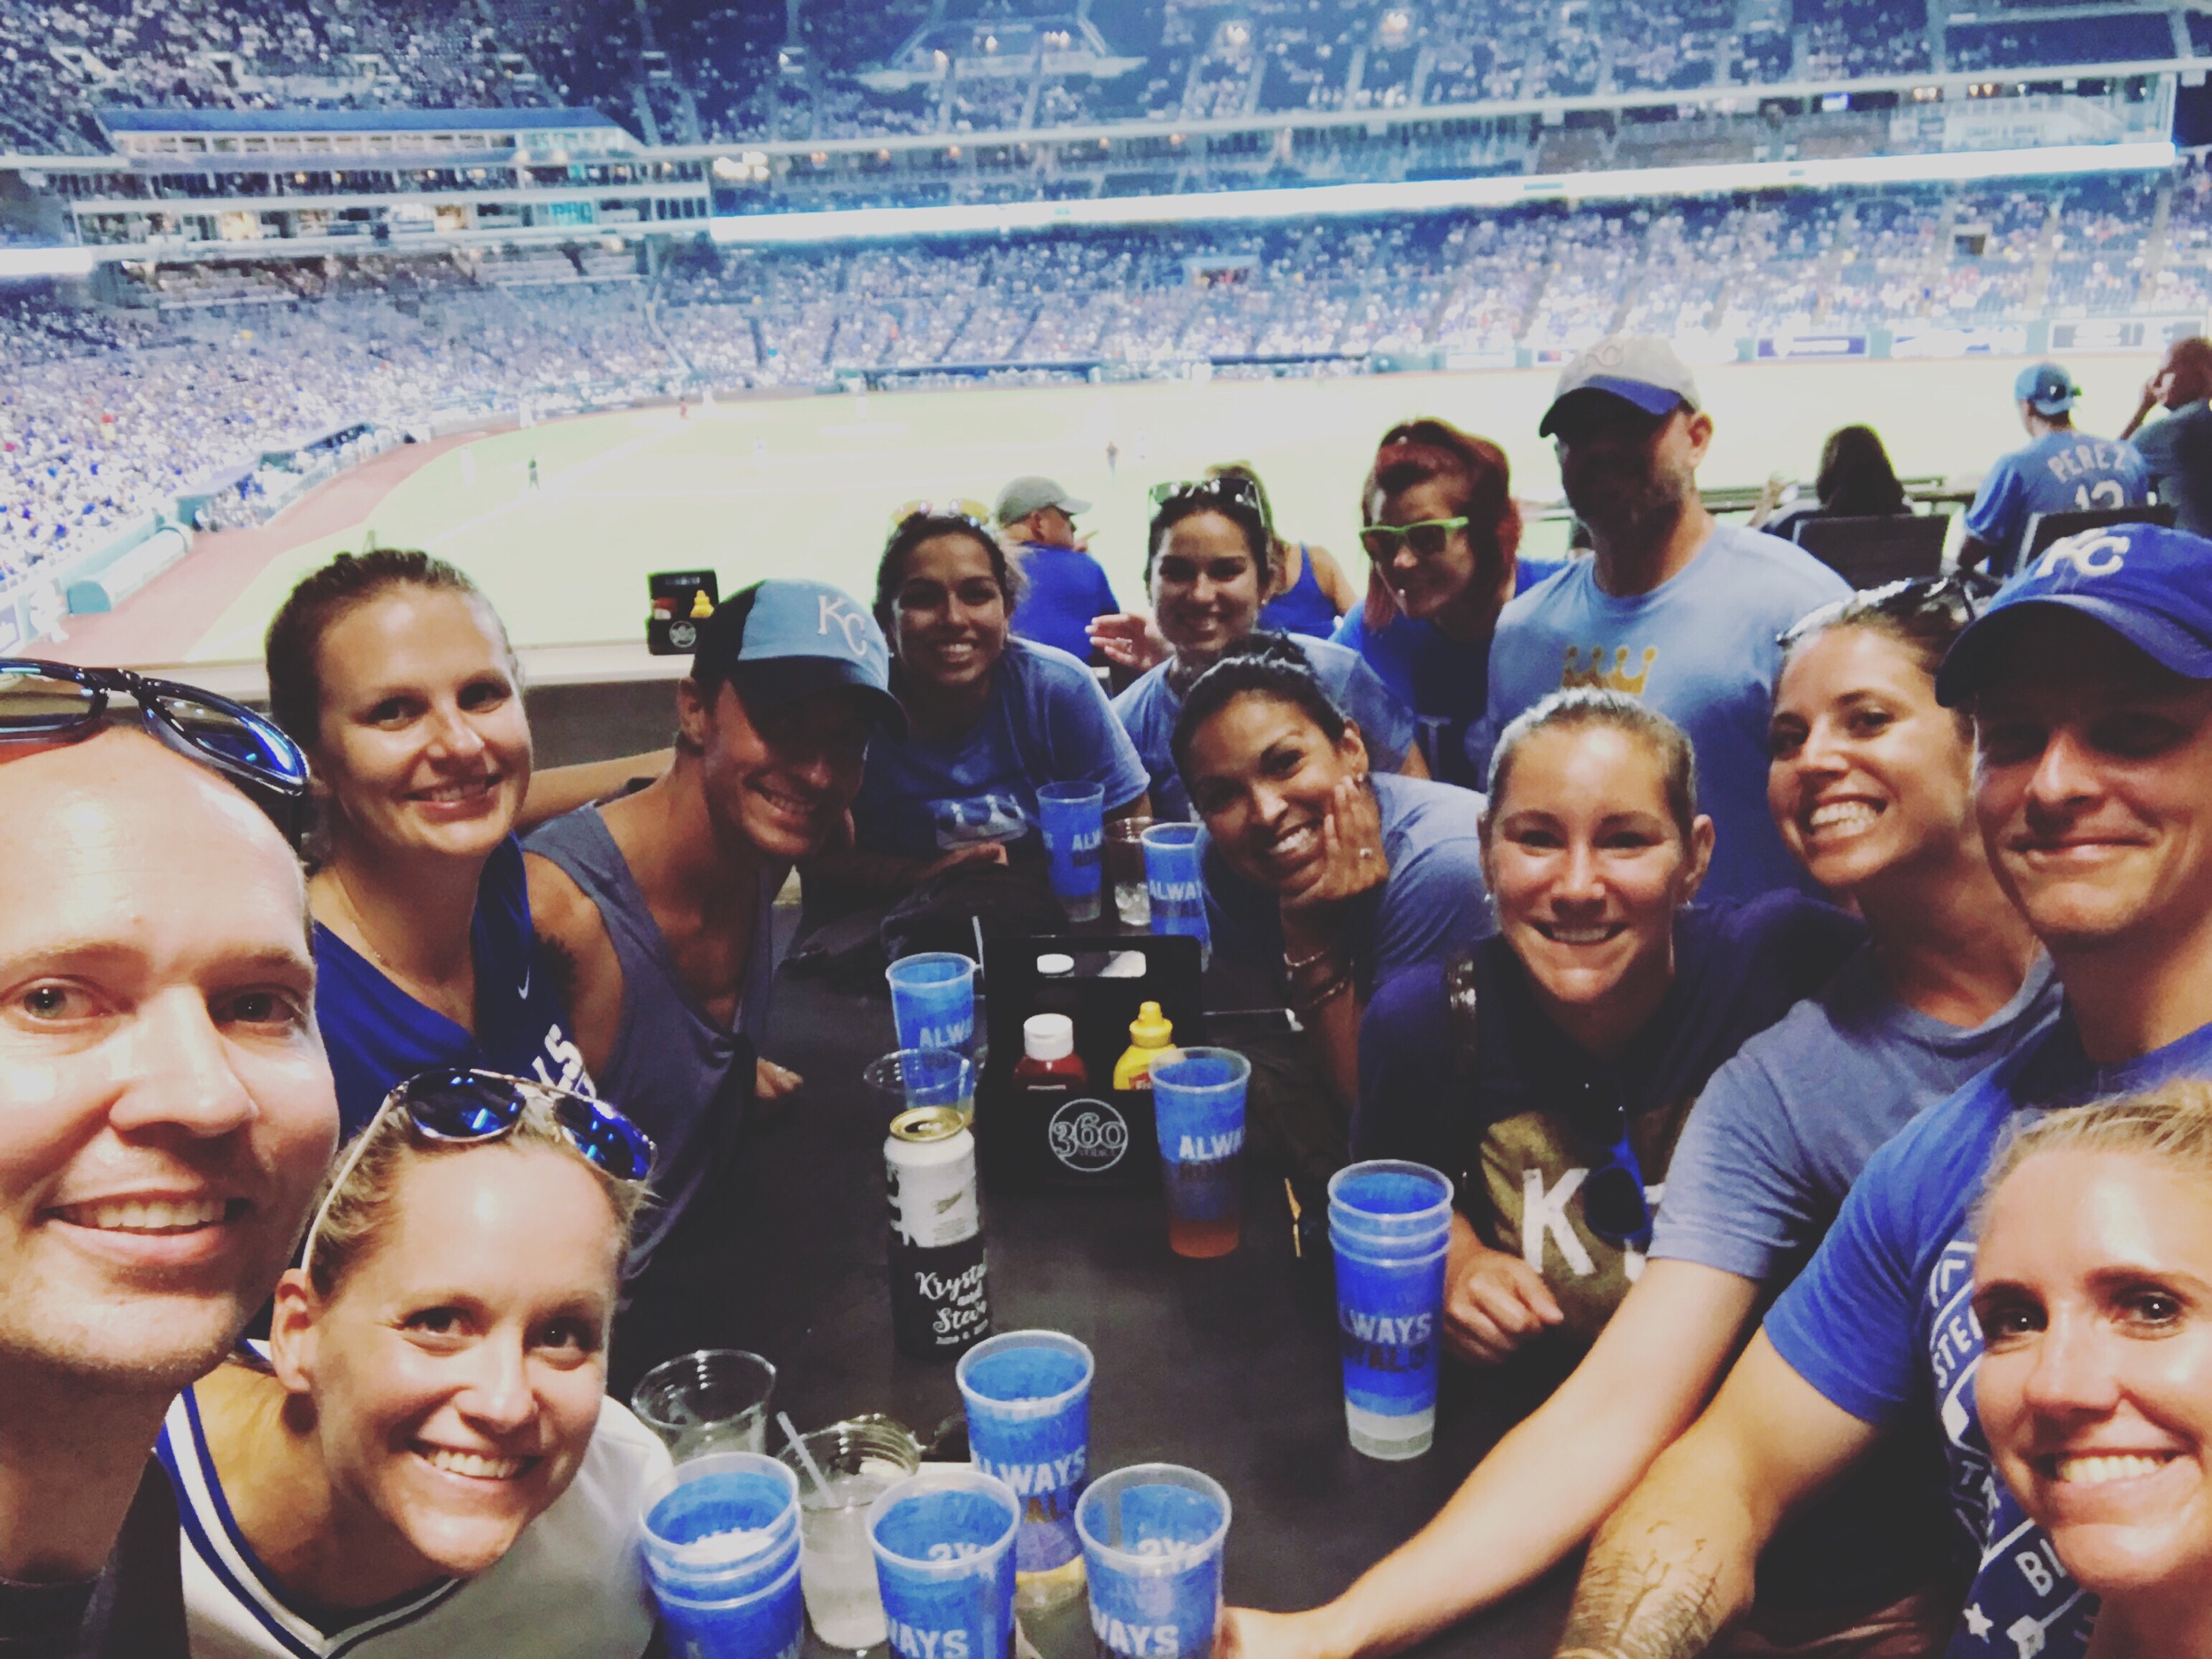 Royals lost to the Indians by 4 but we had a great time at Rivals